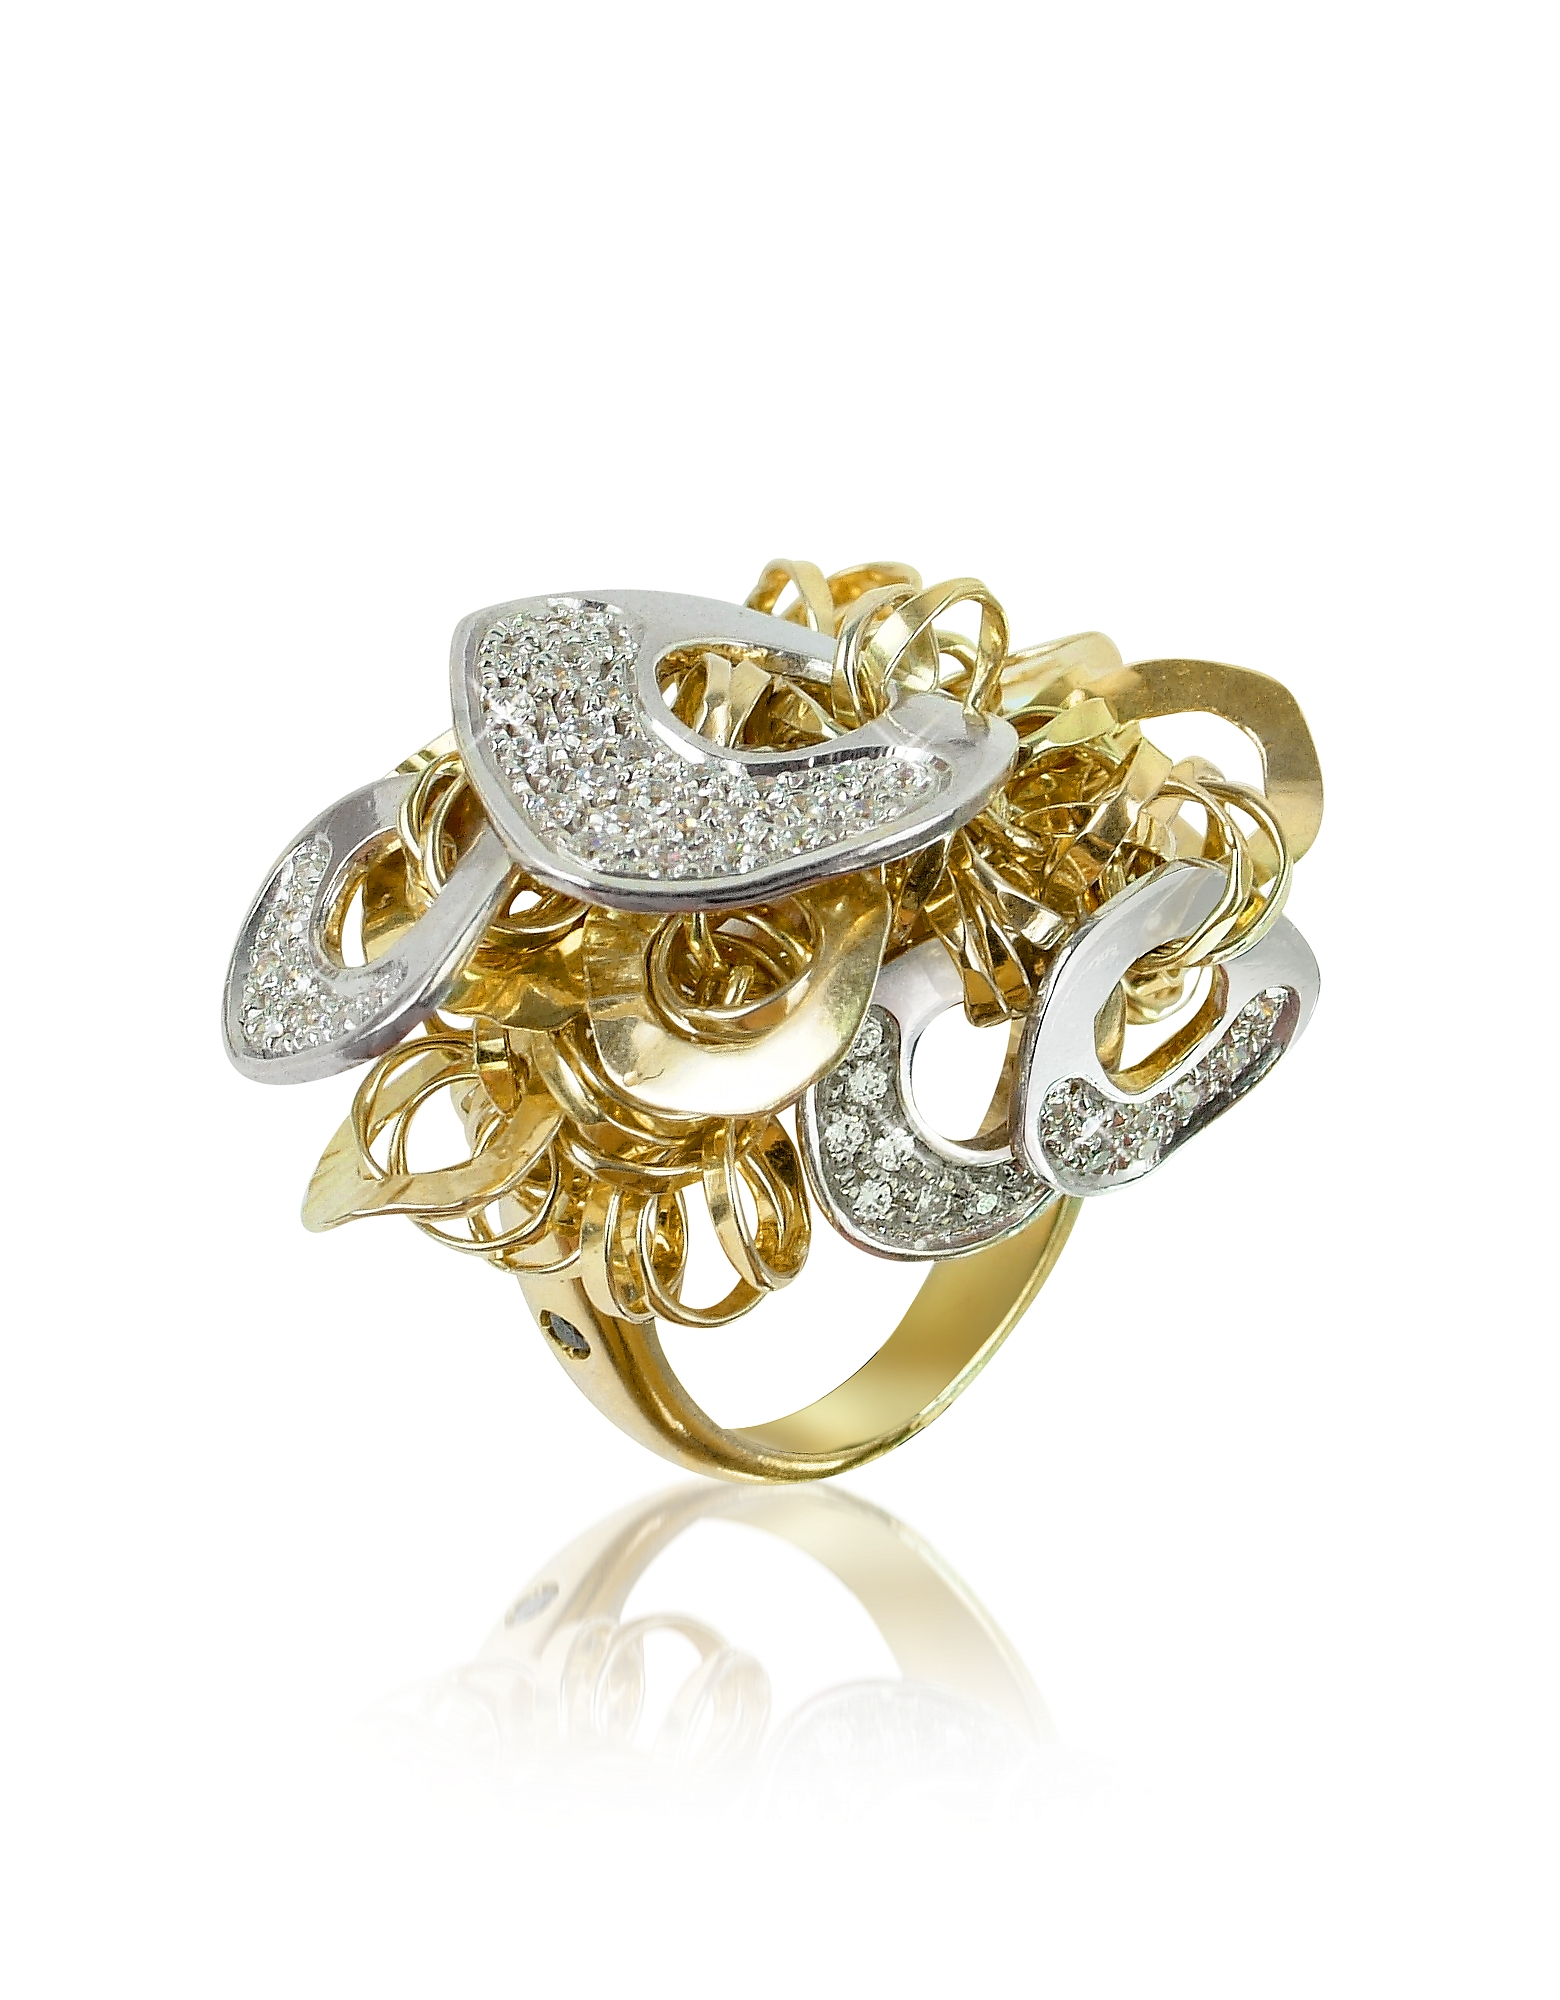 Orlando Orlandini Rings, Fashion - Diamond 18K Gold Charm Ring